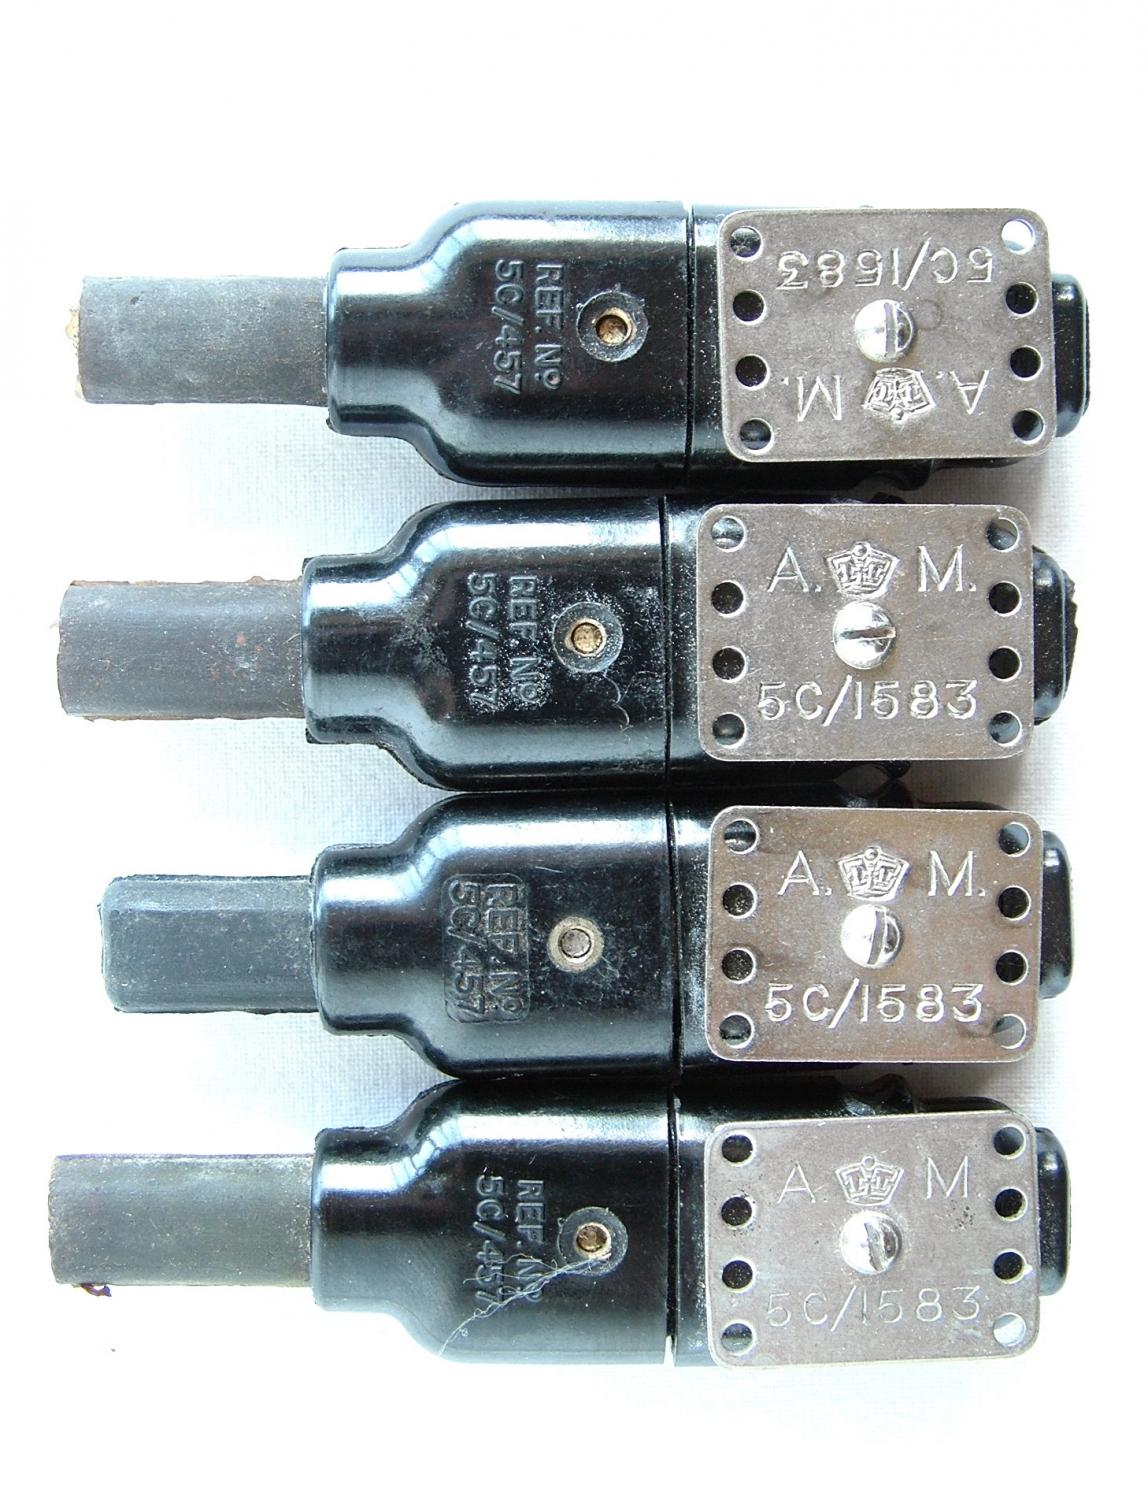 RAF / RAE Electrically Wired Clothing Plugs